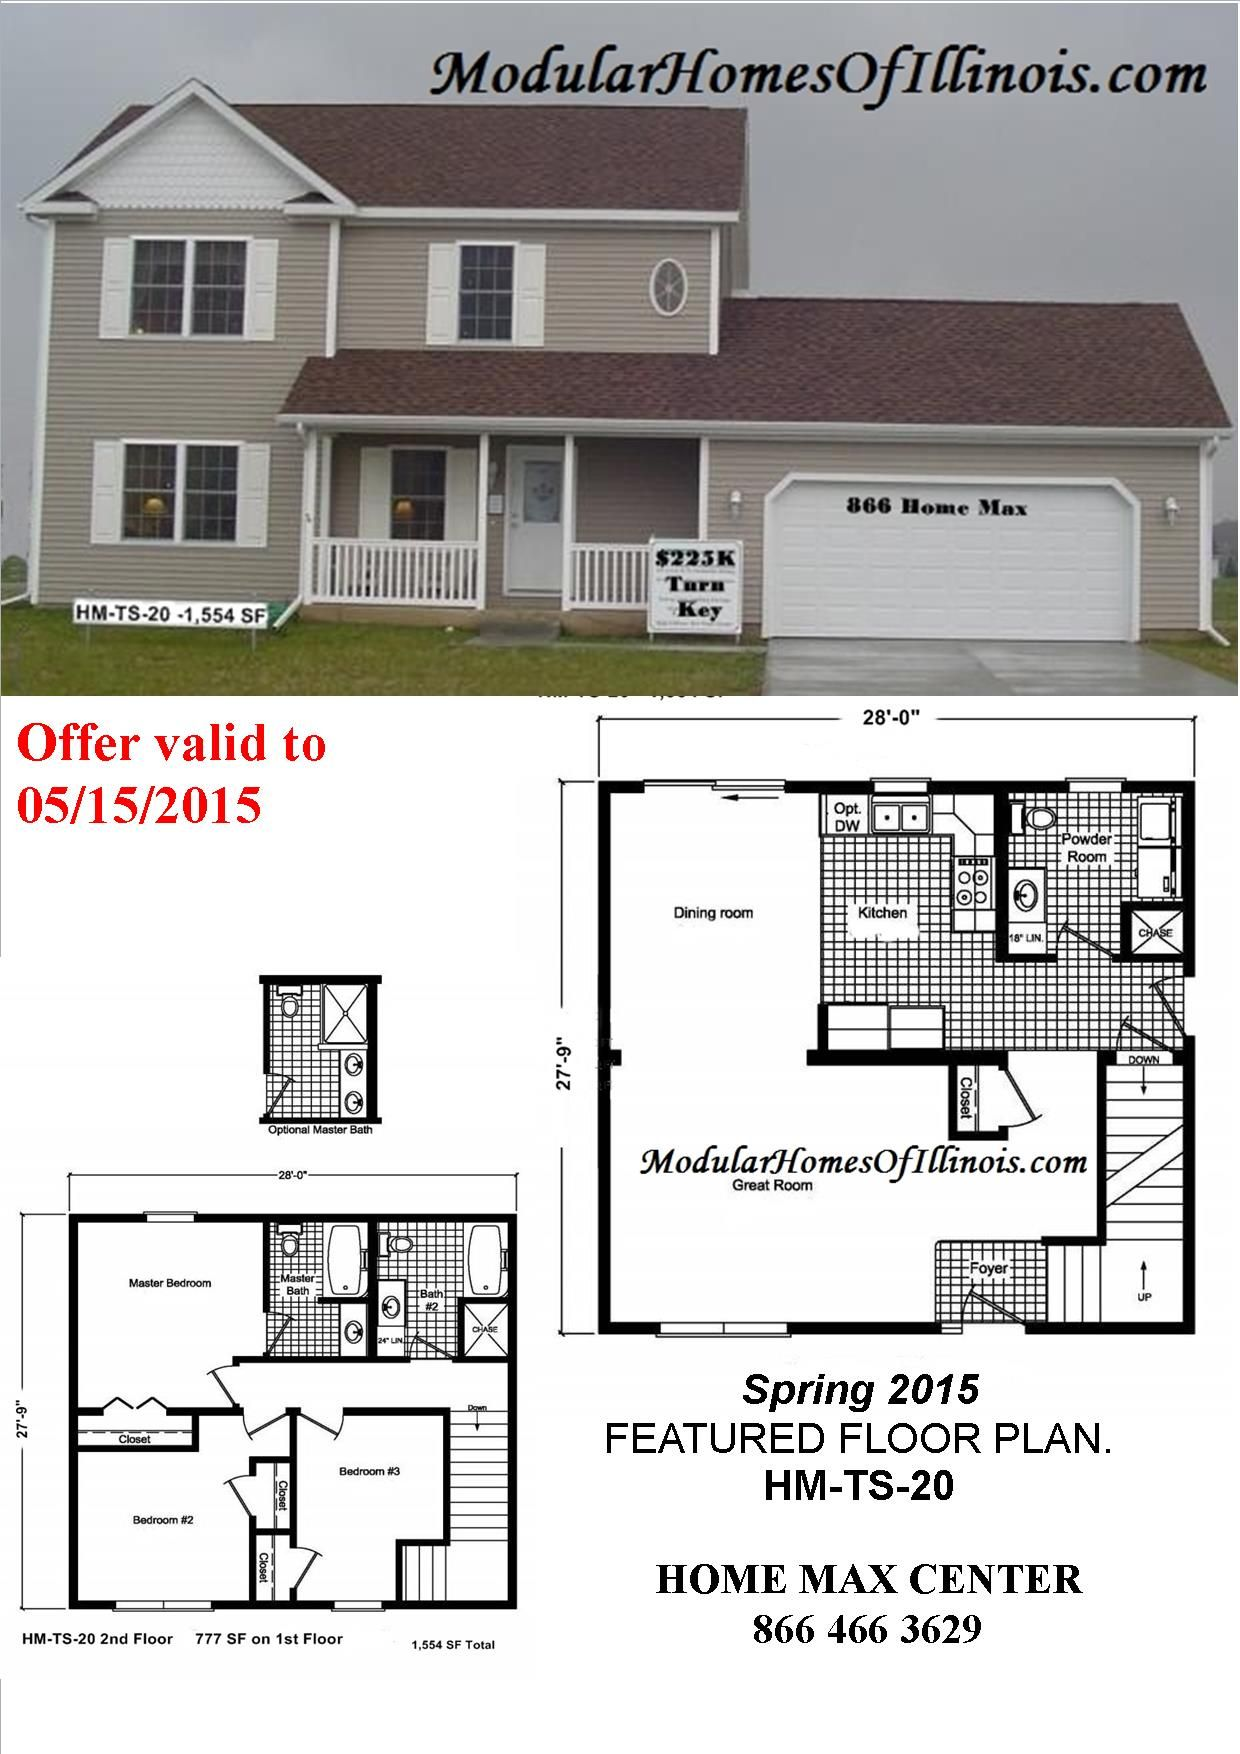 Modular Homes Il Promotion Specials And Incentives Modern